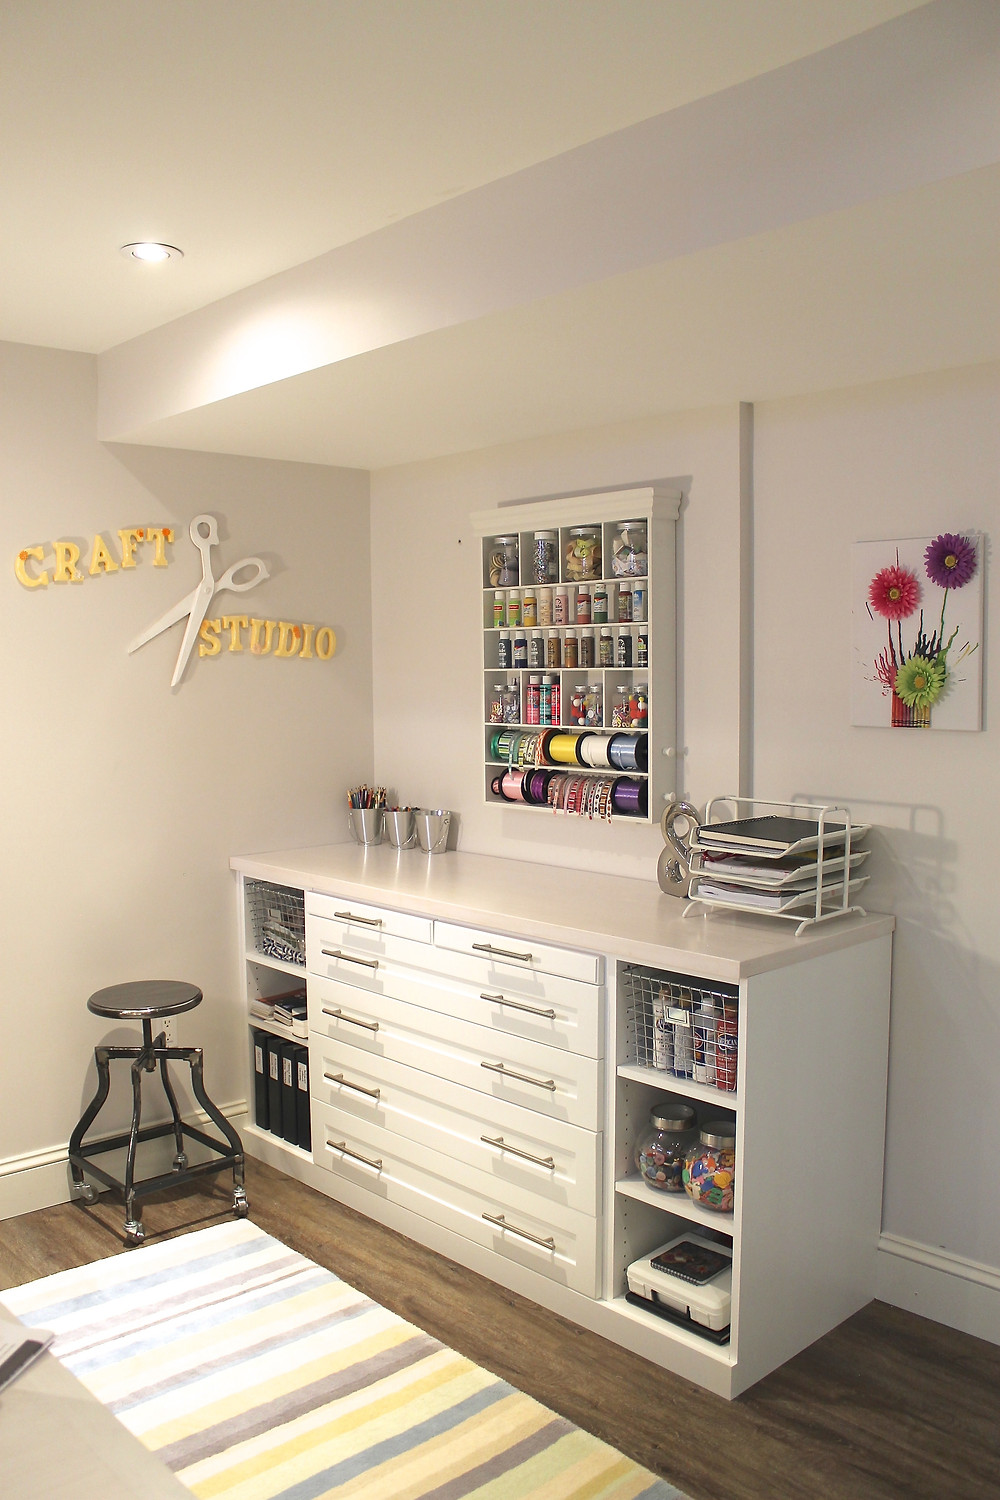 Home office craft area by Georgia's Design